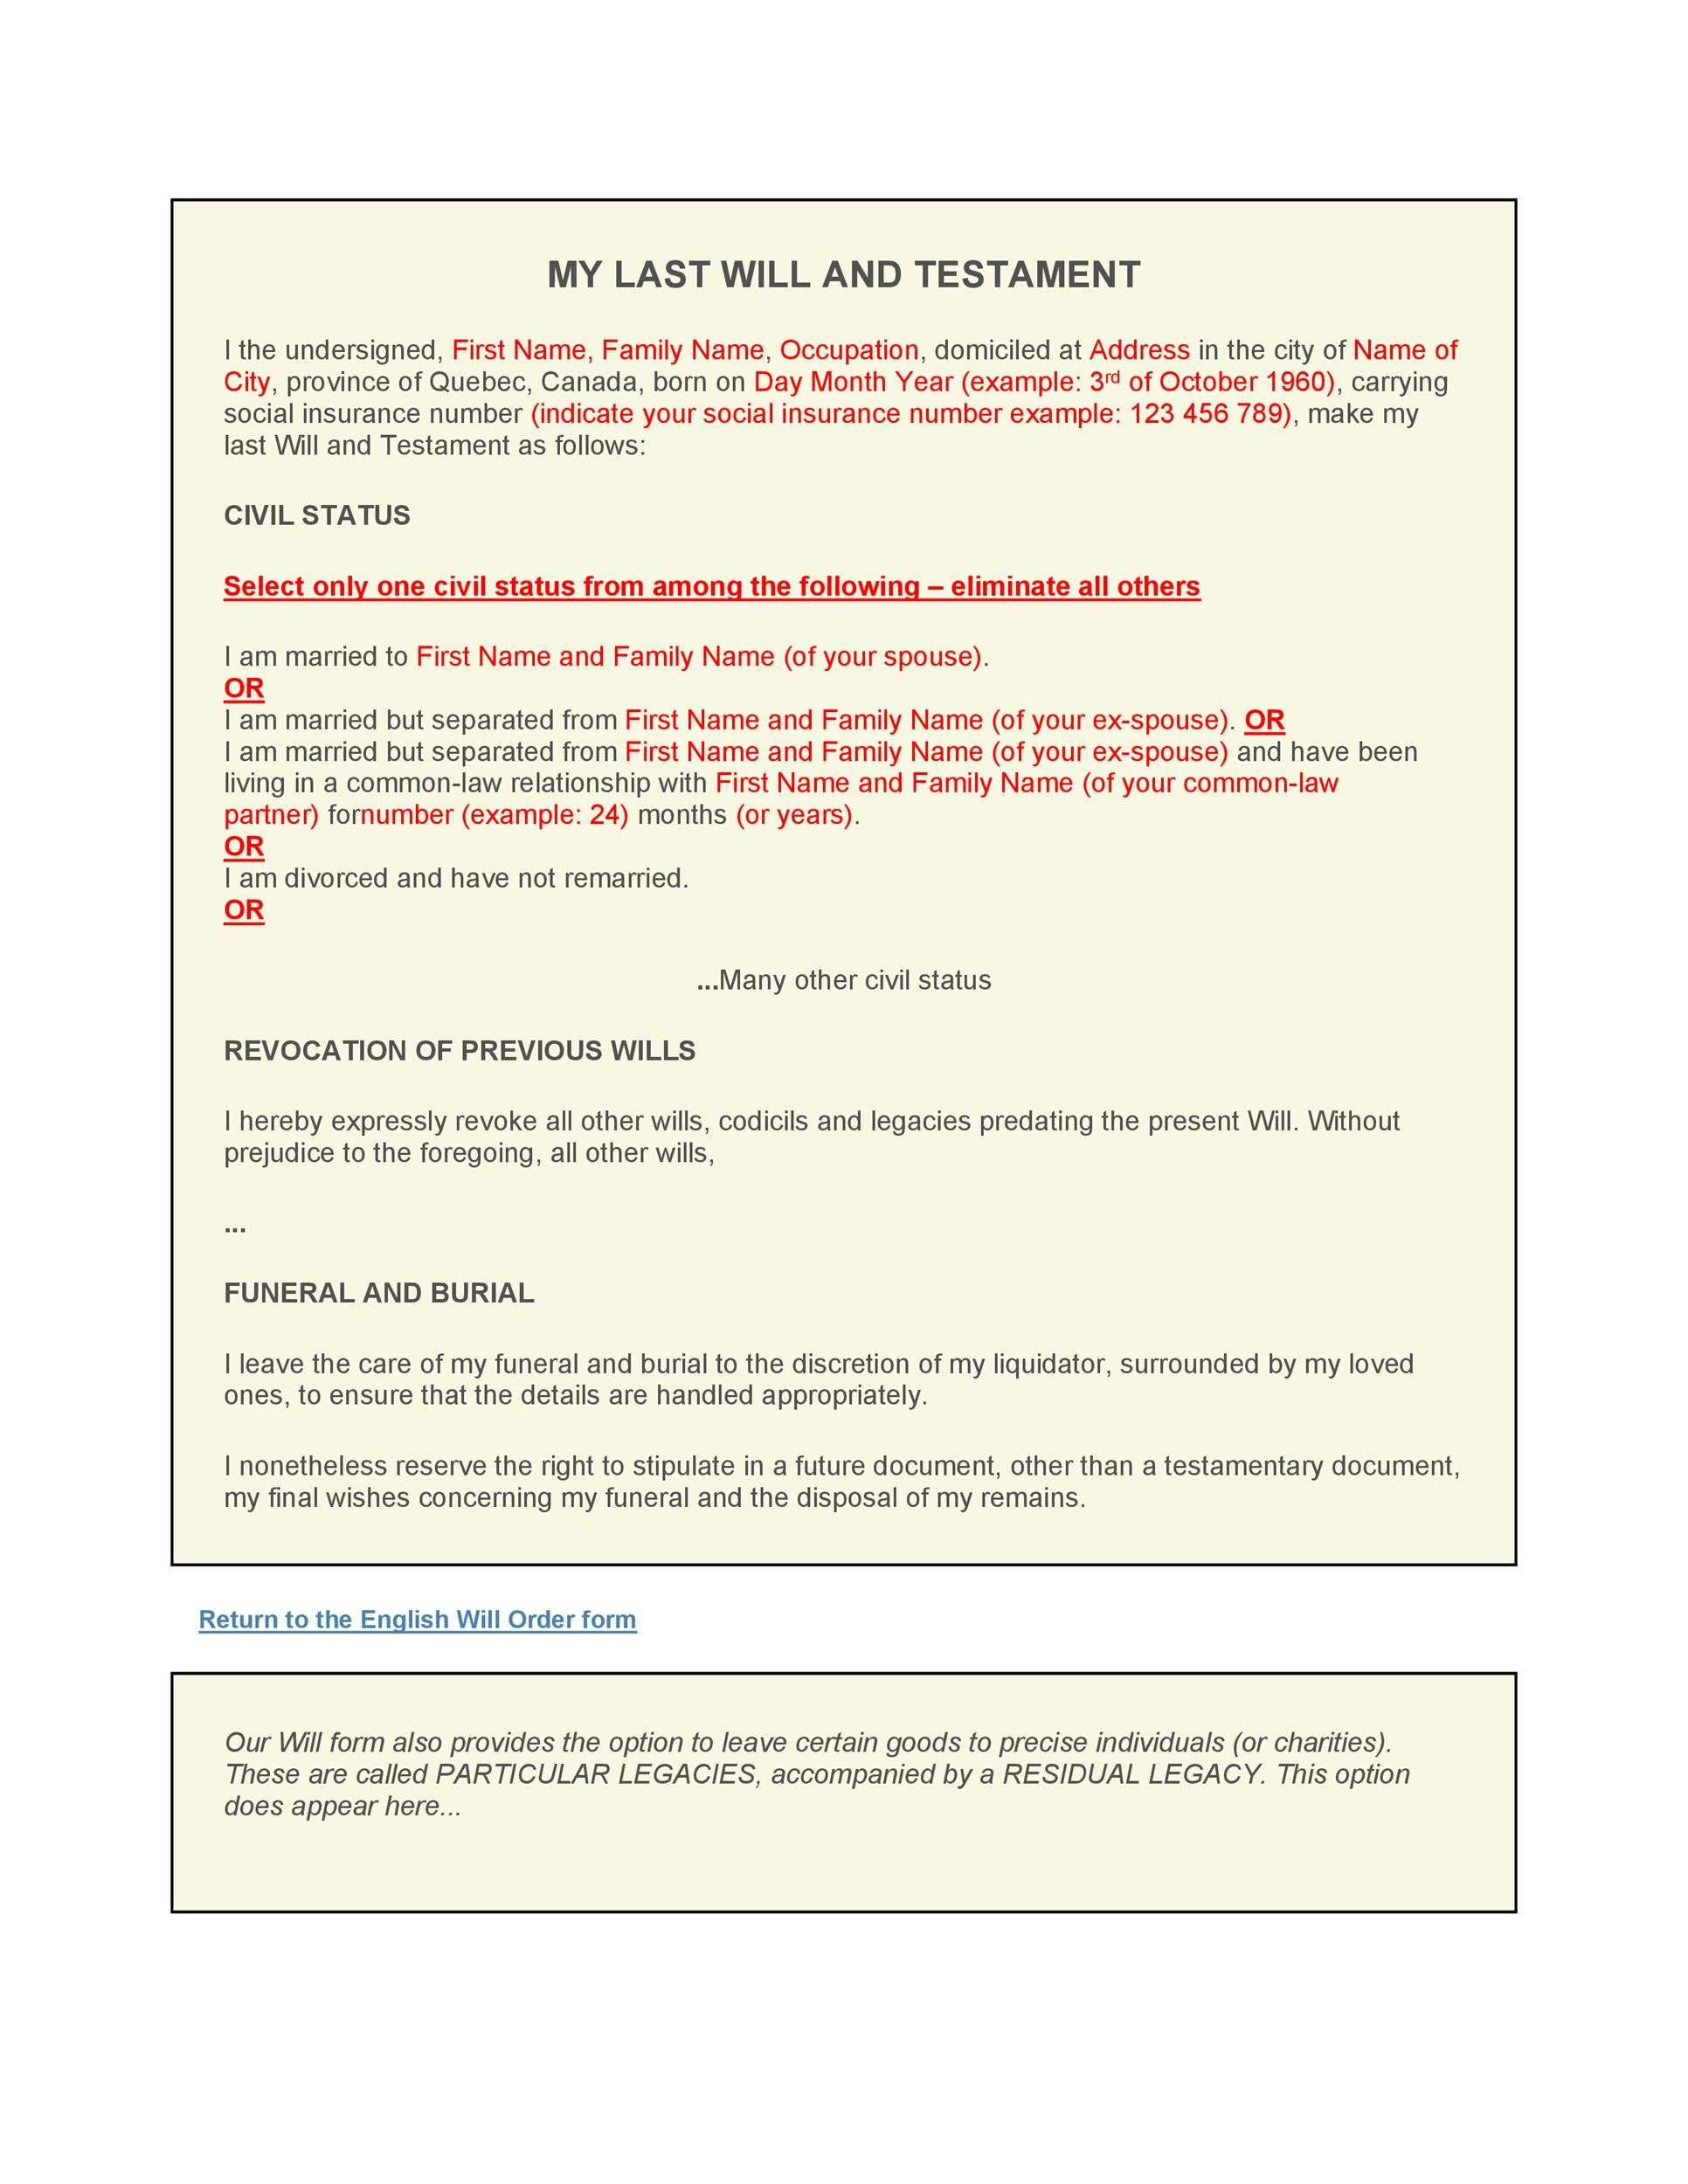 Free Last will and testament template 11